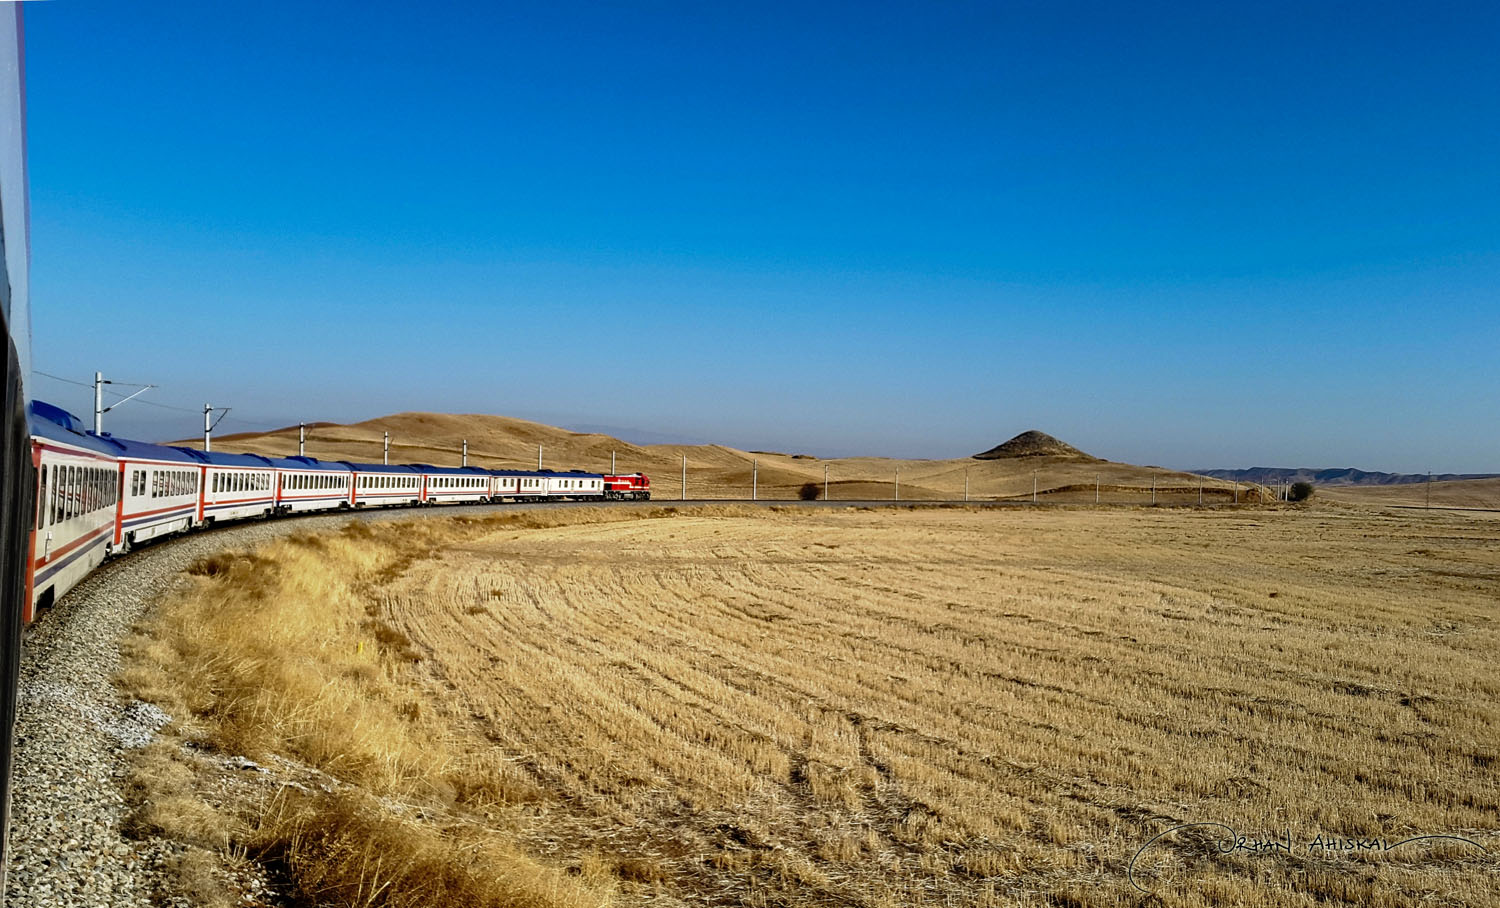 Anatolian steppes between Kırıkkale and Kayseri. Photo: Orhan Ahıskal